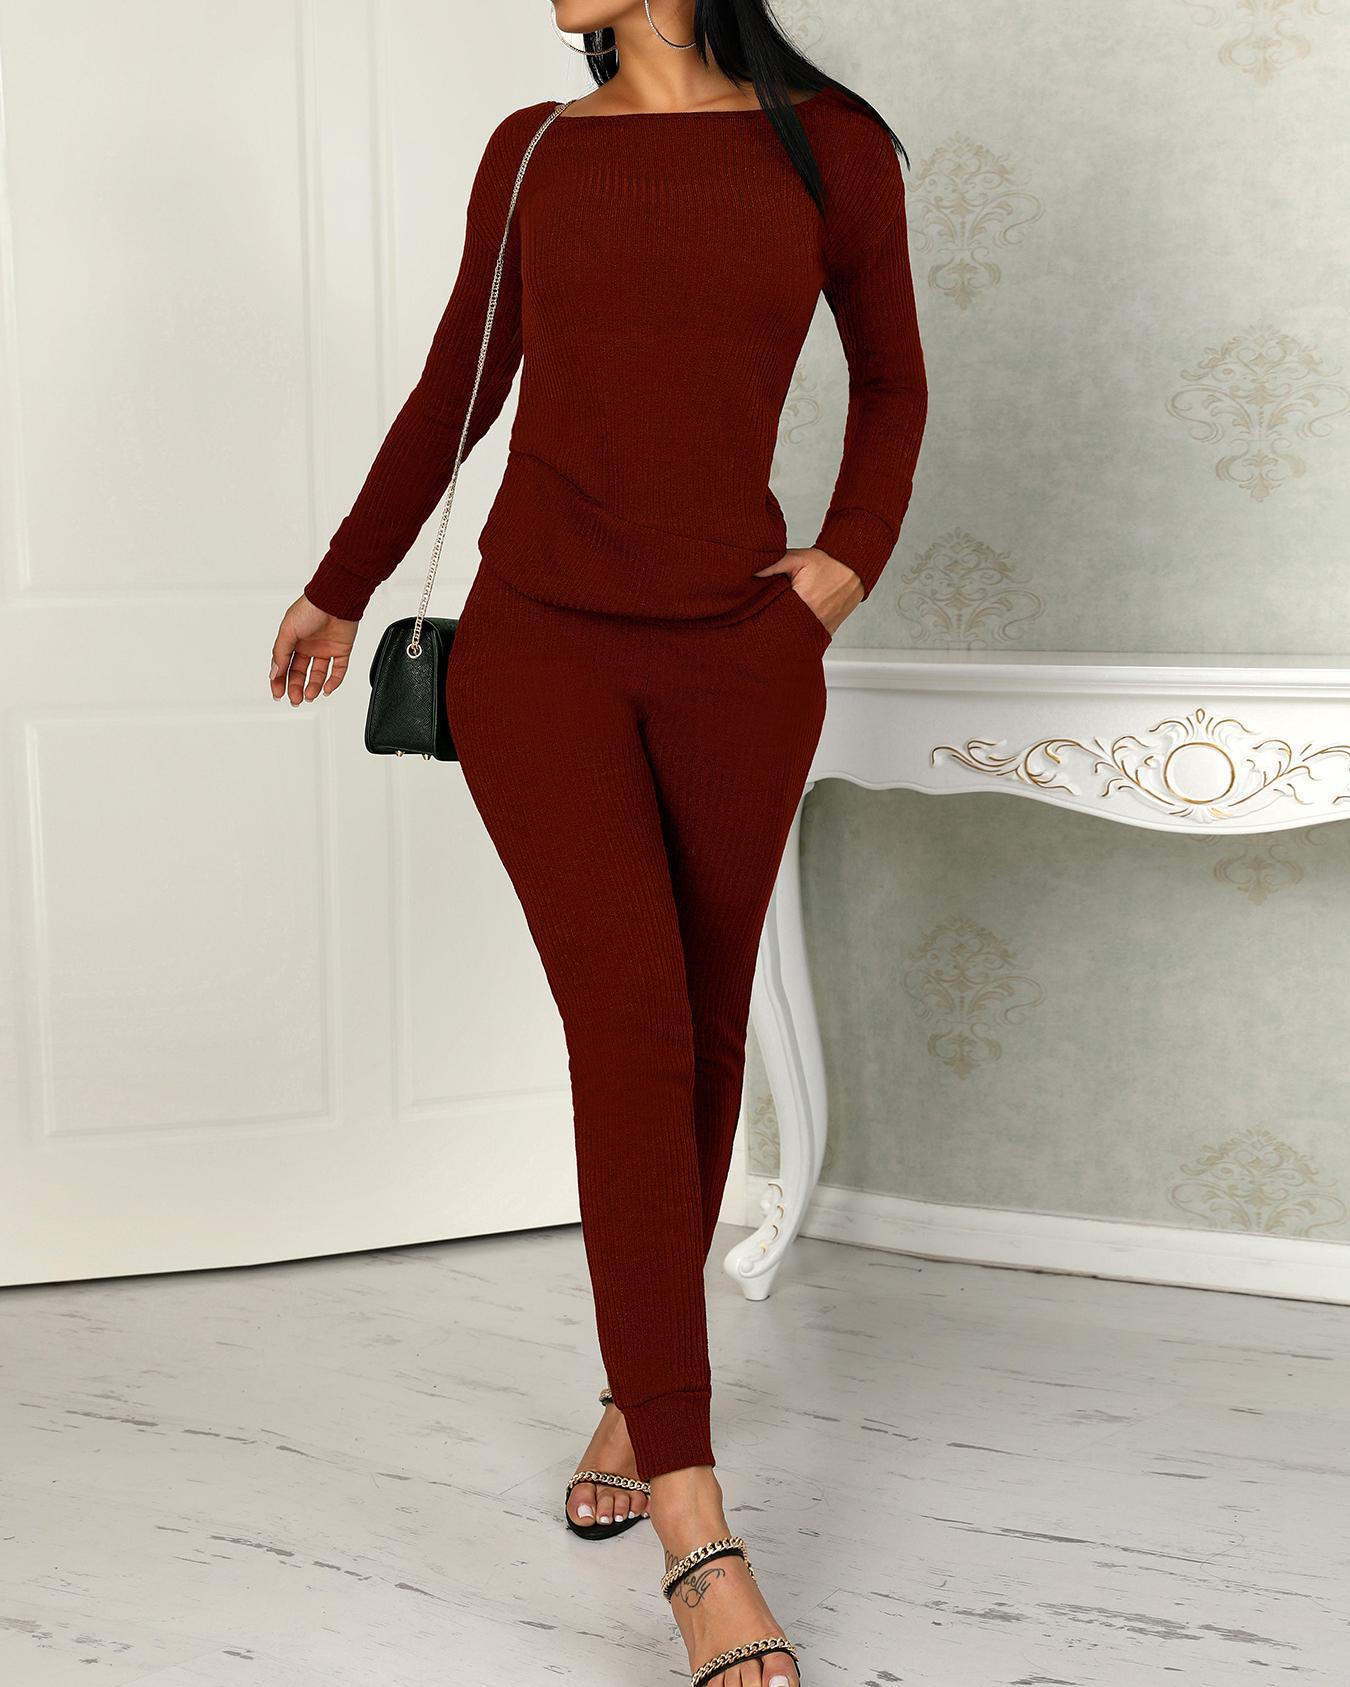 ivrose / Long Sleeve Drawstring Knitted Top & Pants Set